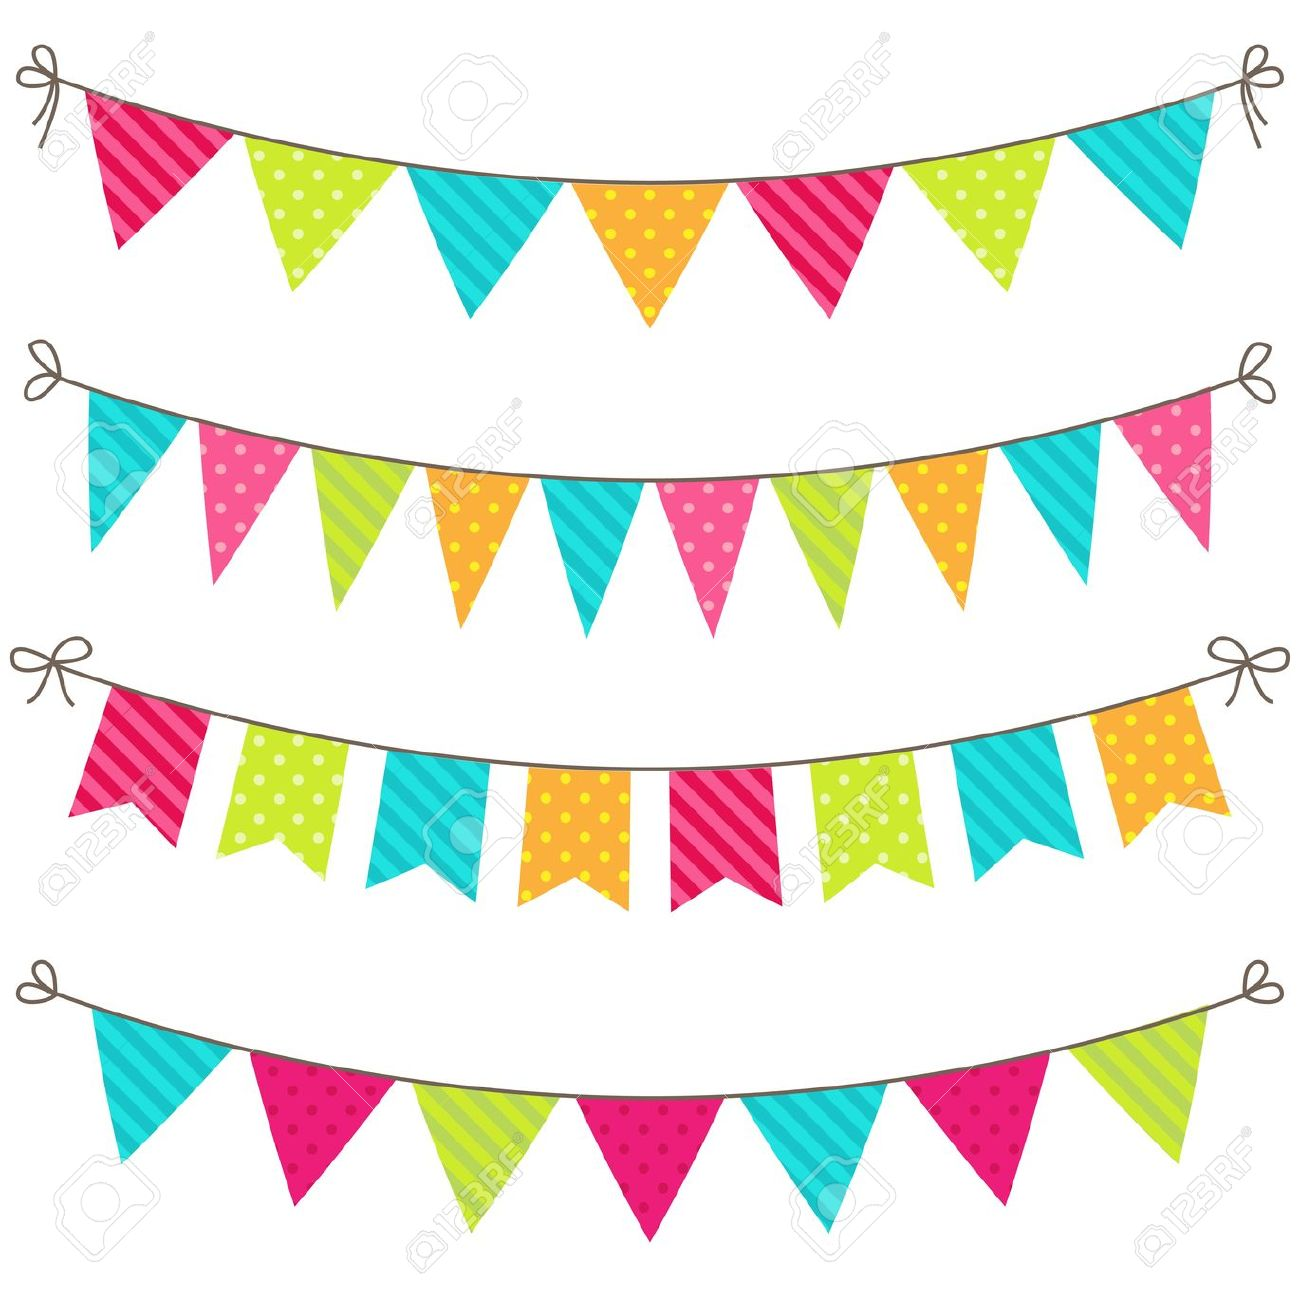 Pendent clipart party banner Banner for flag party colorful